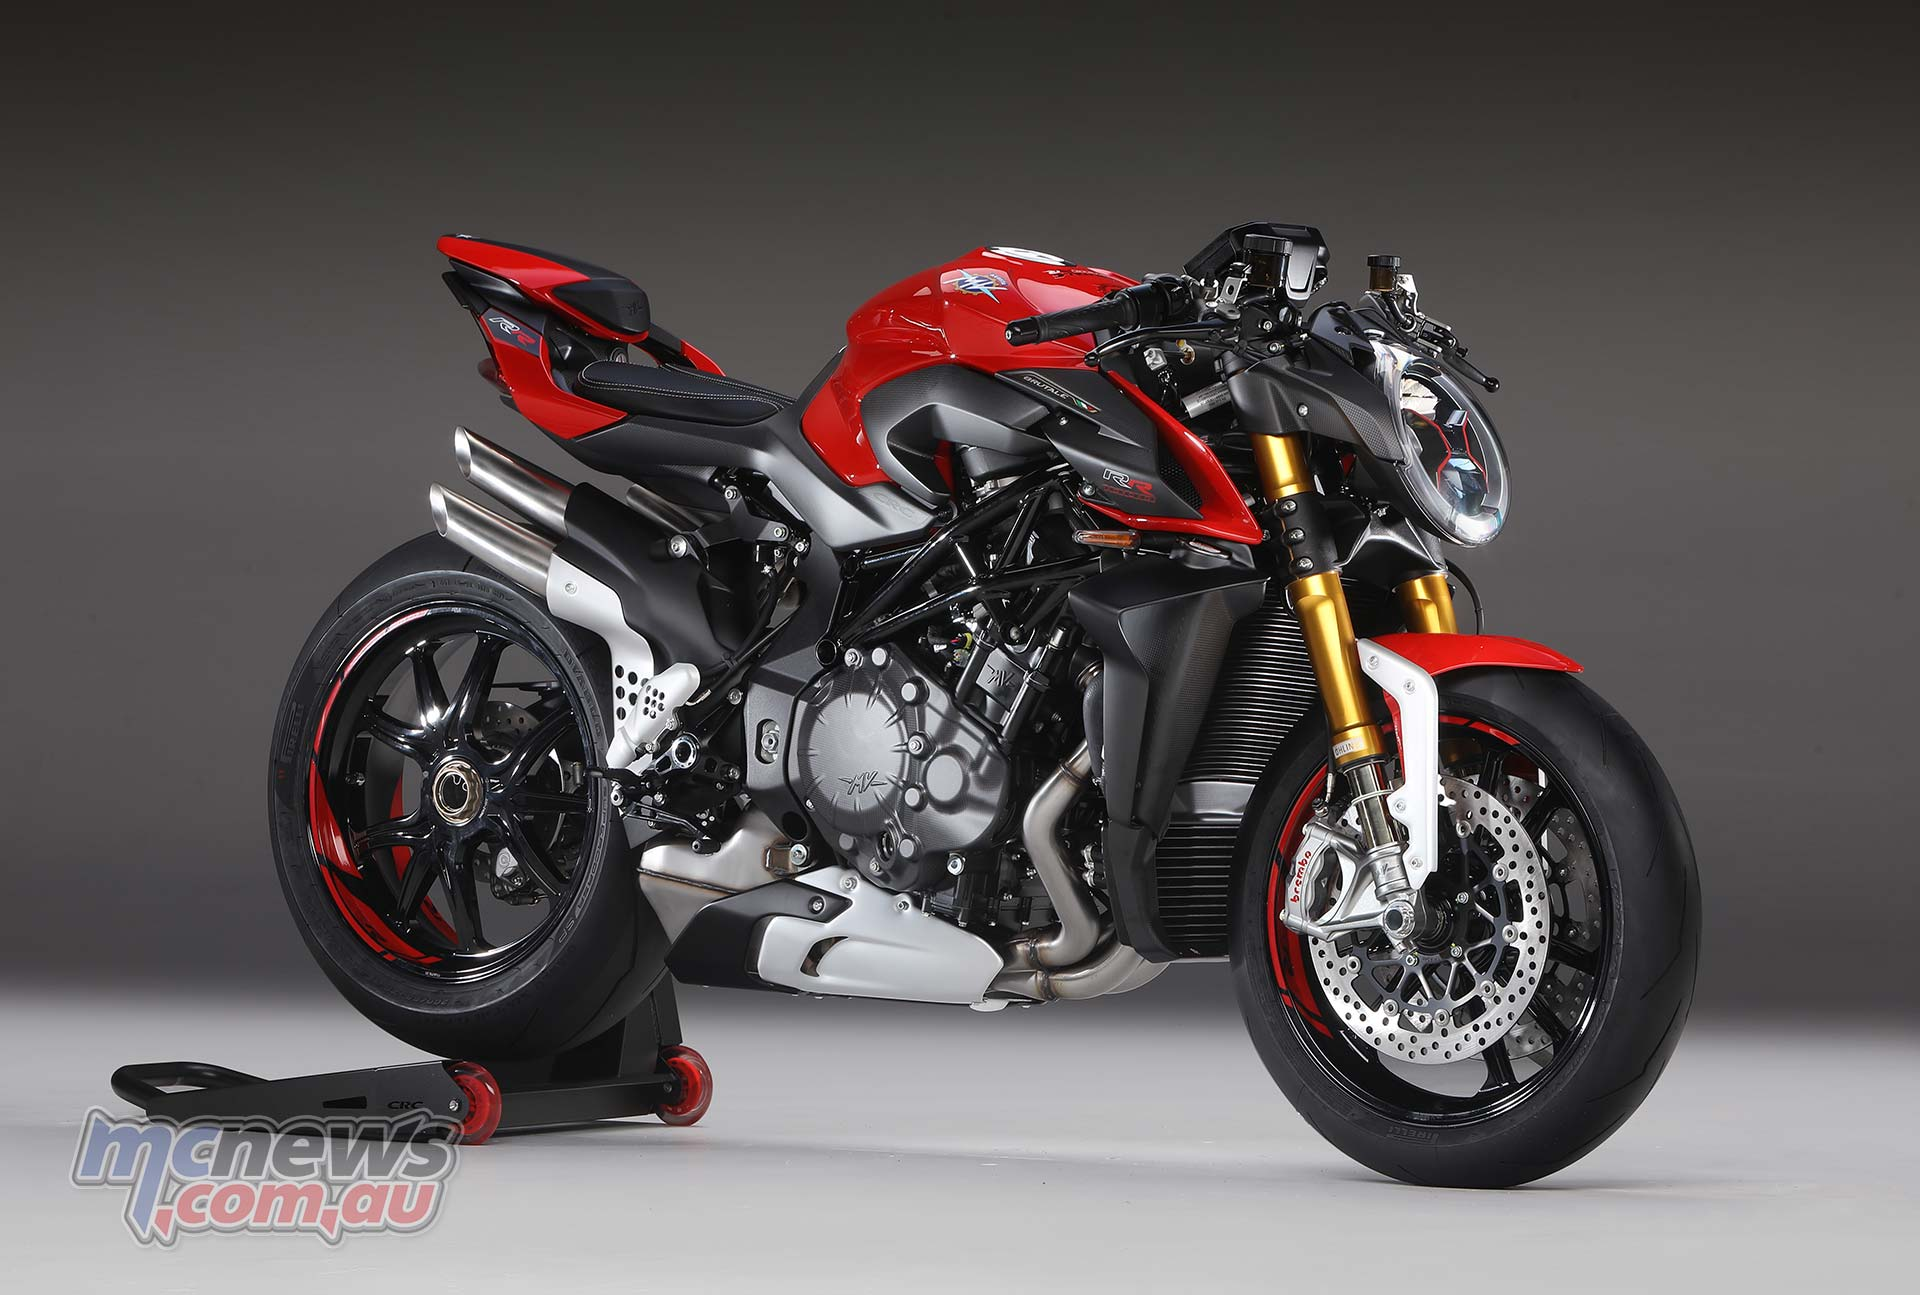 208 horsepower at 13,000 rpm from the Brutale RR